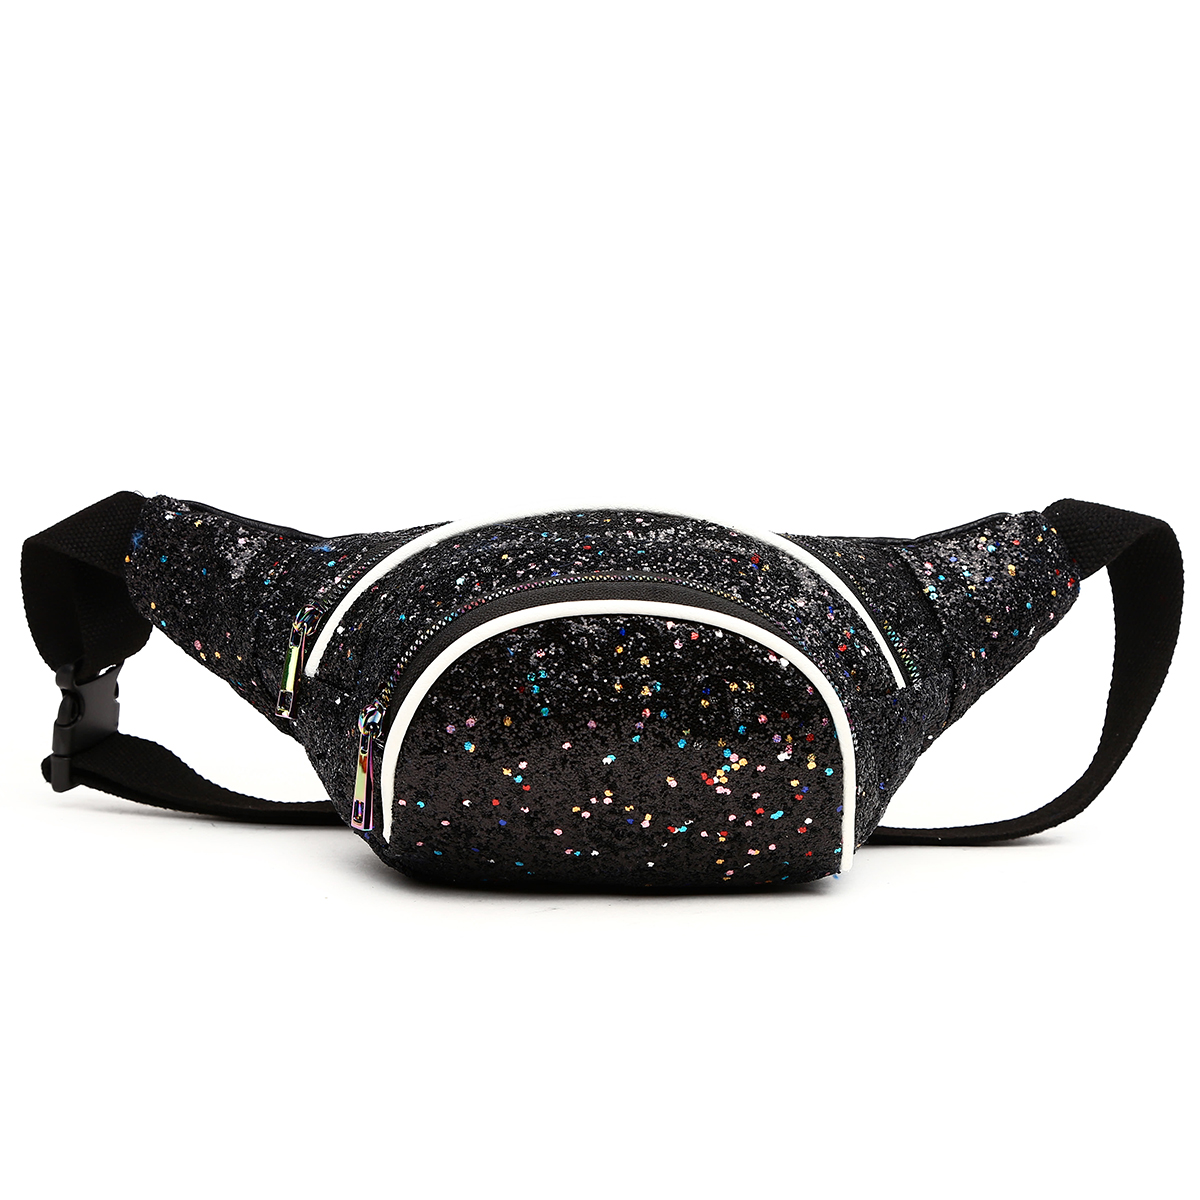 Glittered Fanny Pack Black/White